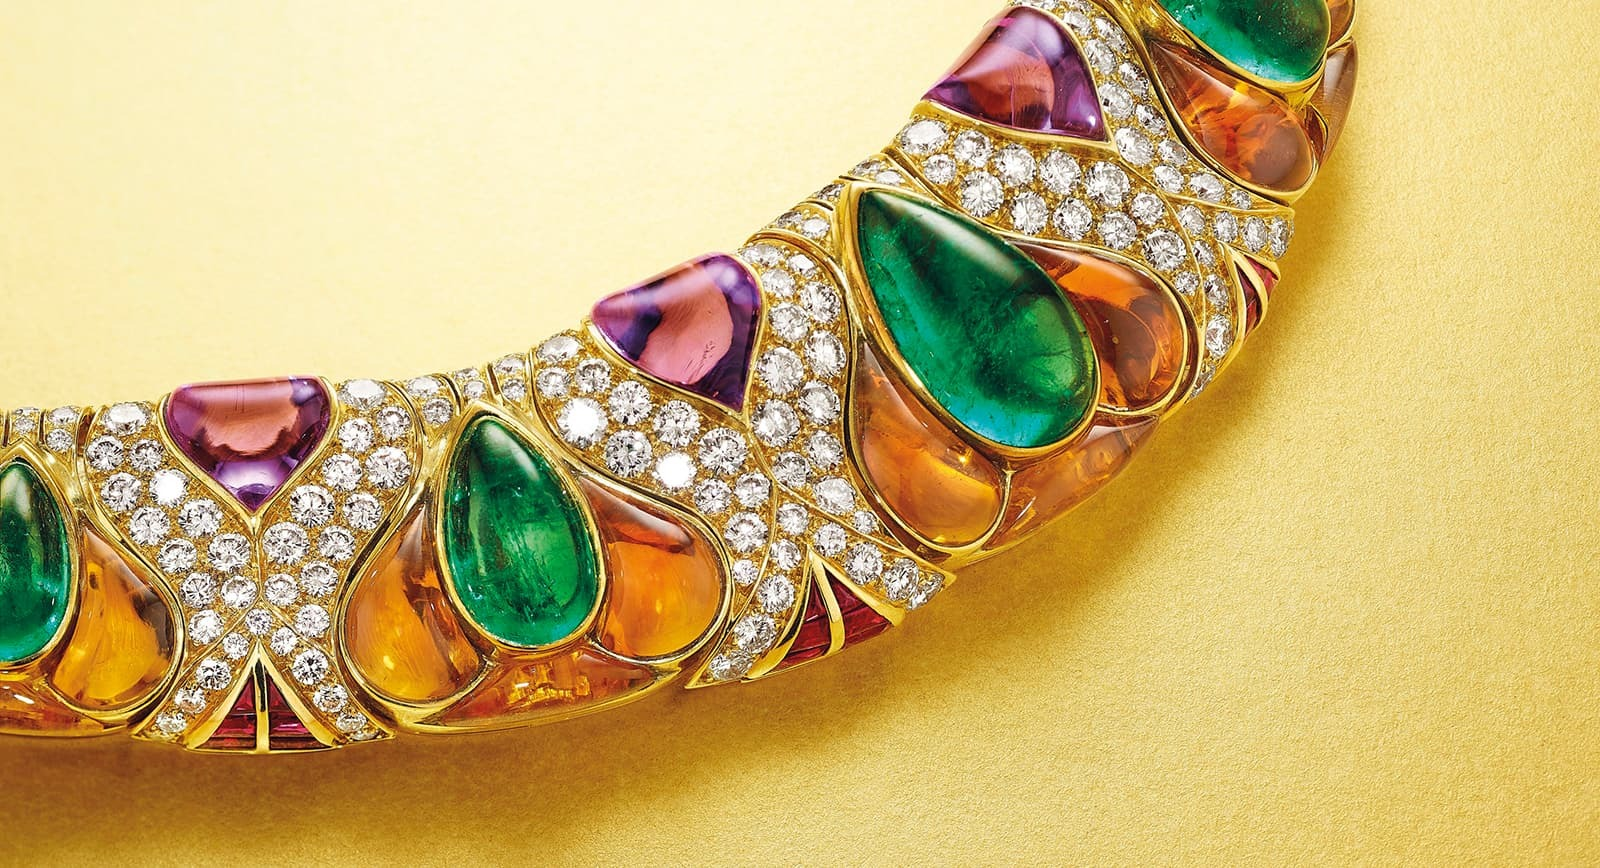 Bvlgari necklace with diamond and coloured gemstones that will be sold at Christie's auction in New York